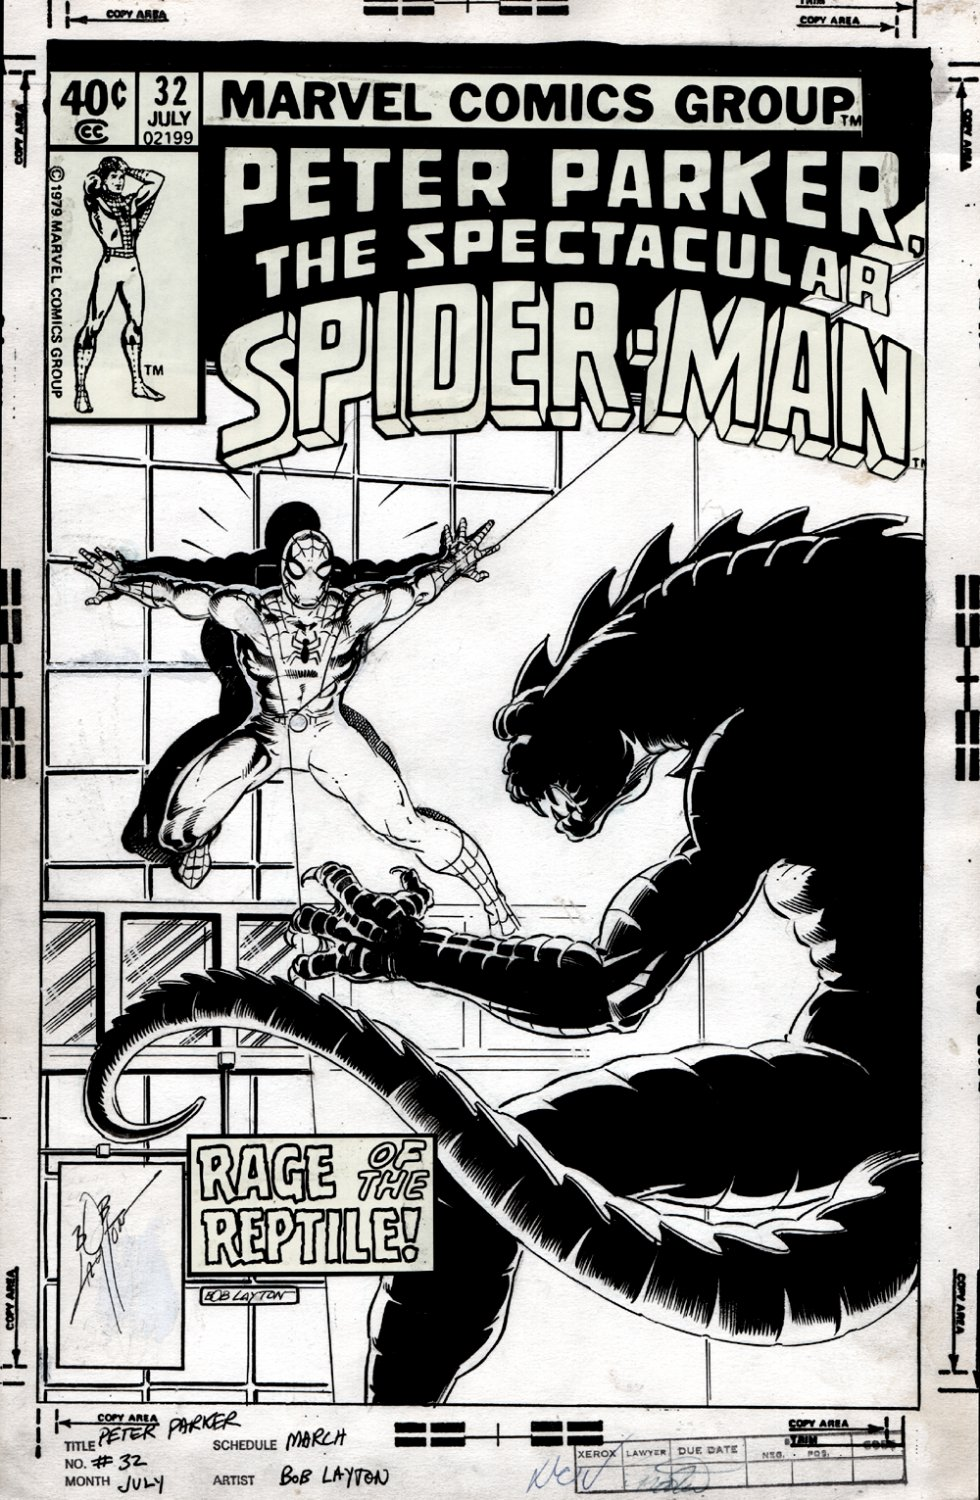 Spectacular Spider-Man #32 Cover (1979)